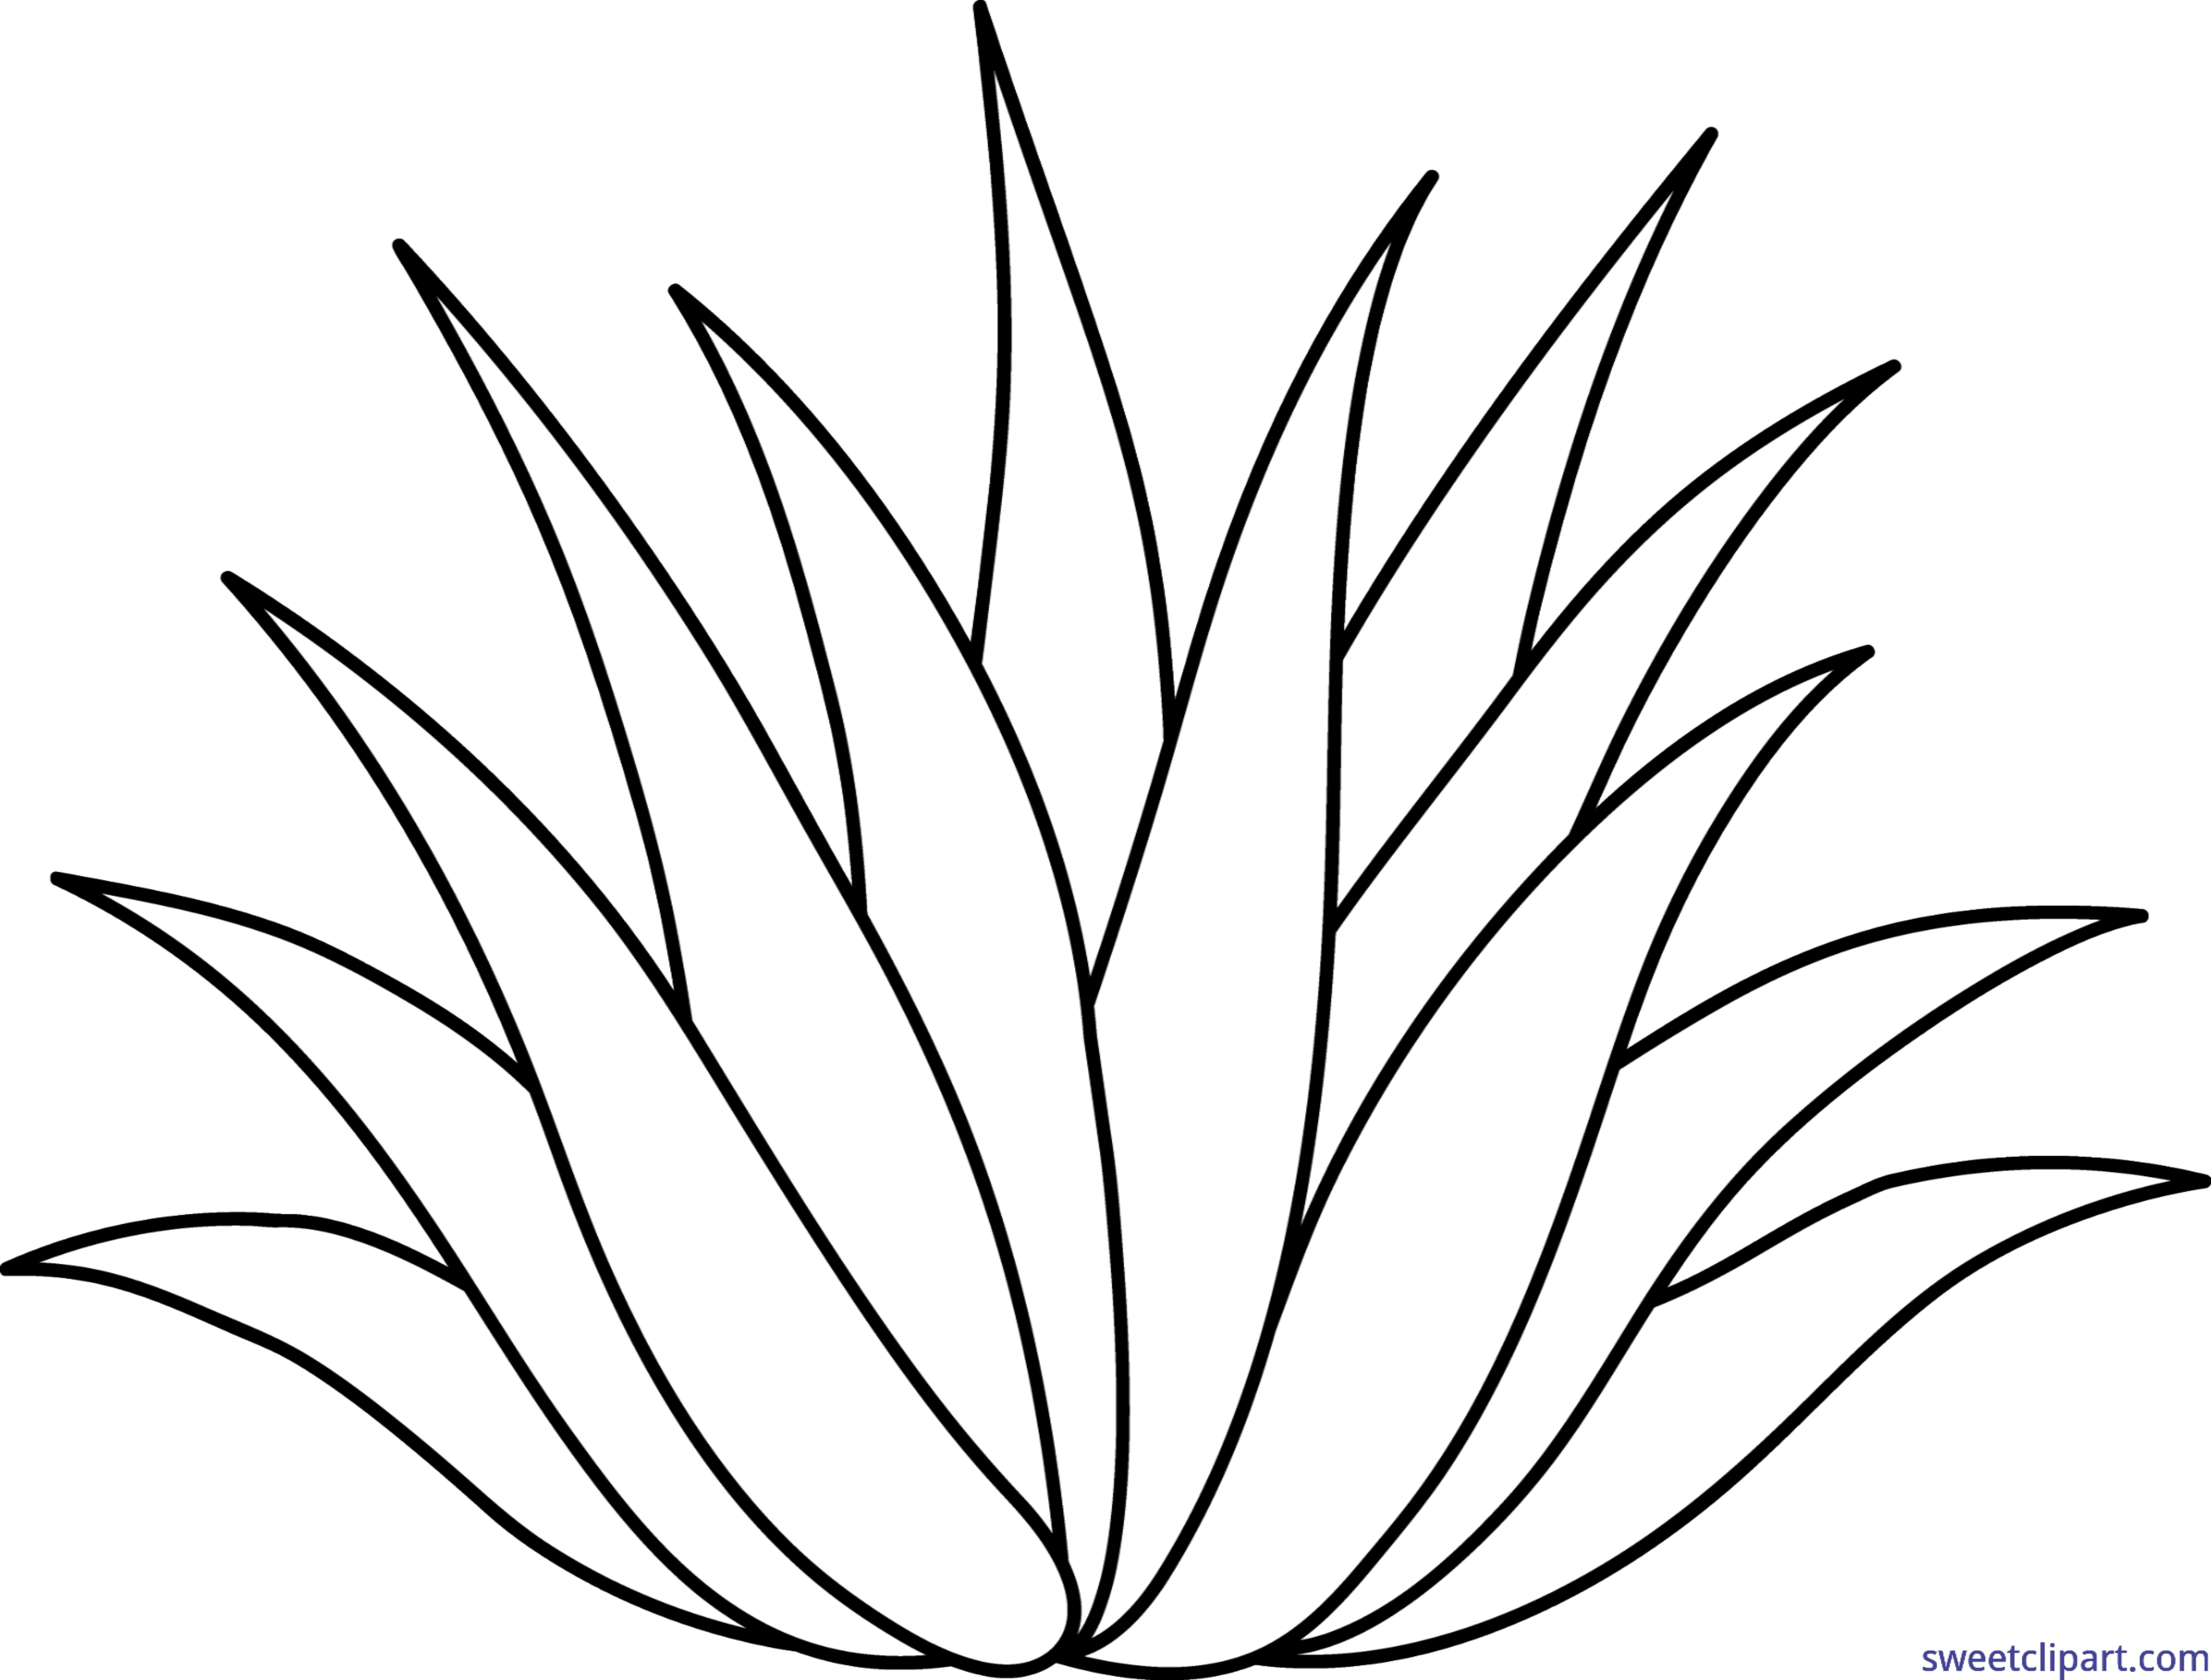 6303x4790 19 Agave Vector Art Huge Freebie! Download For Powerpoint